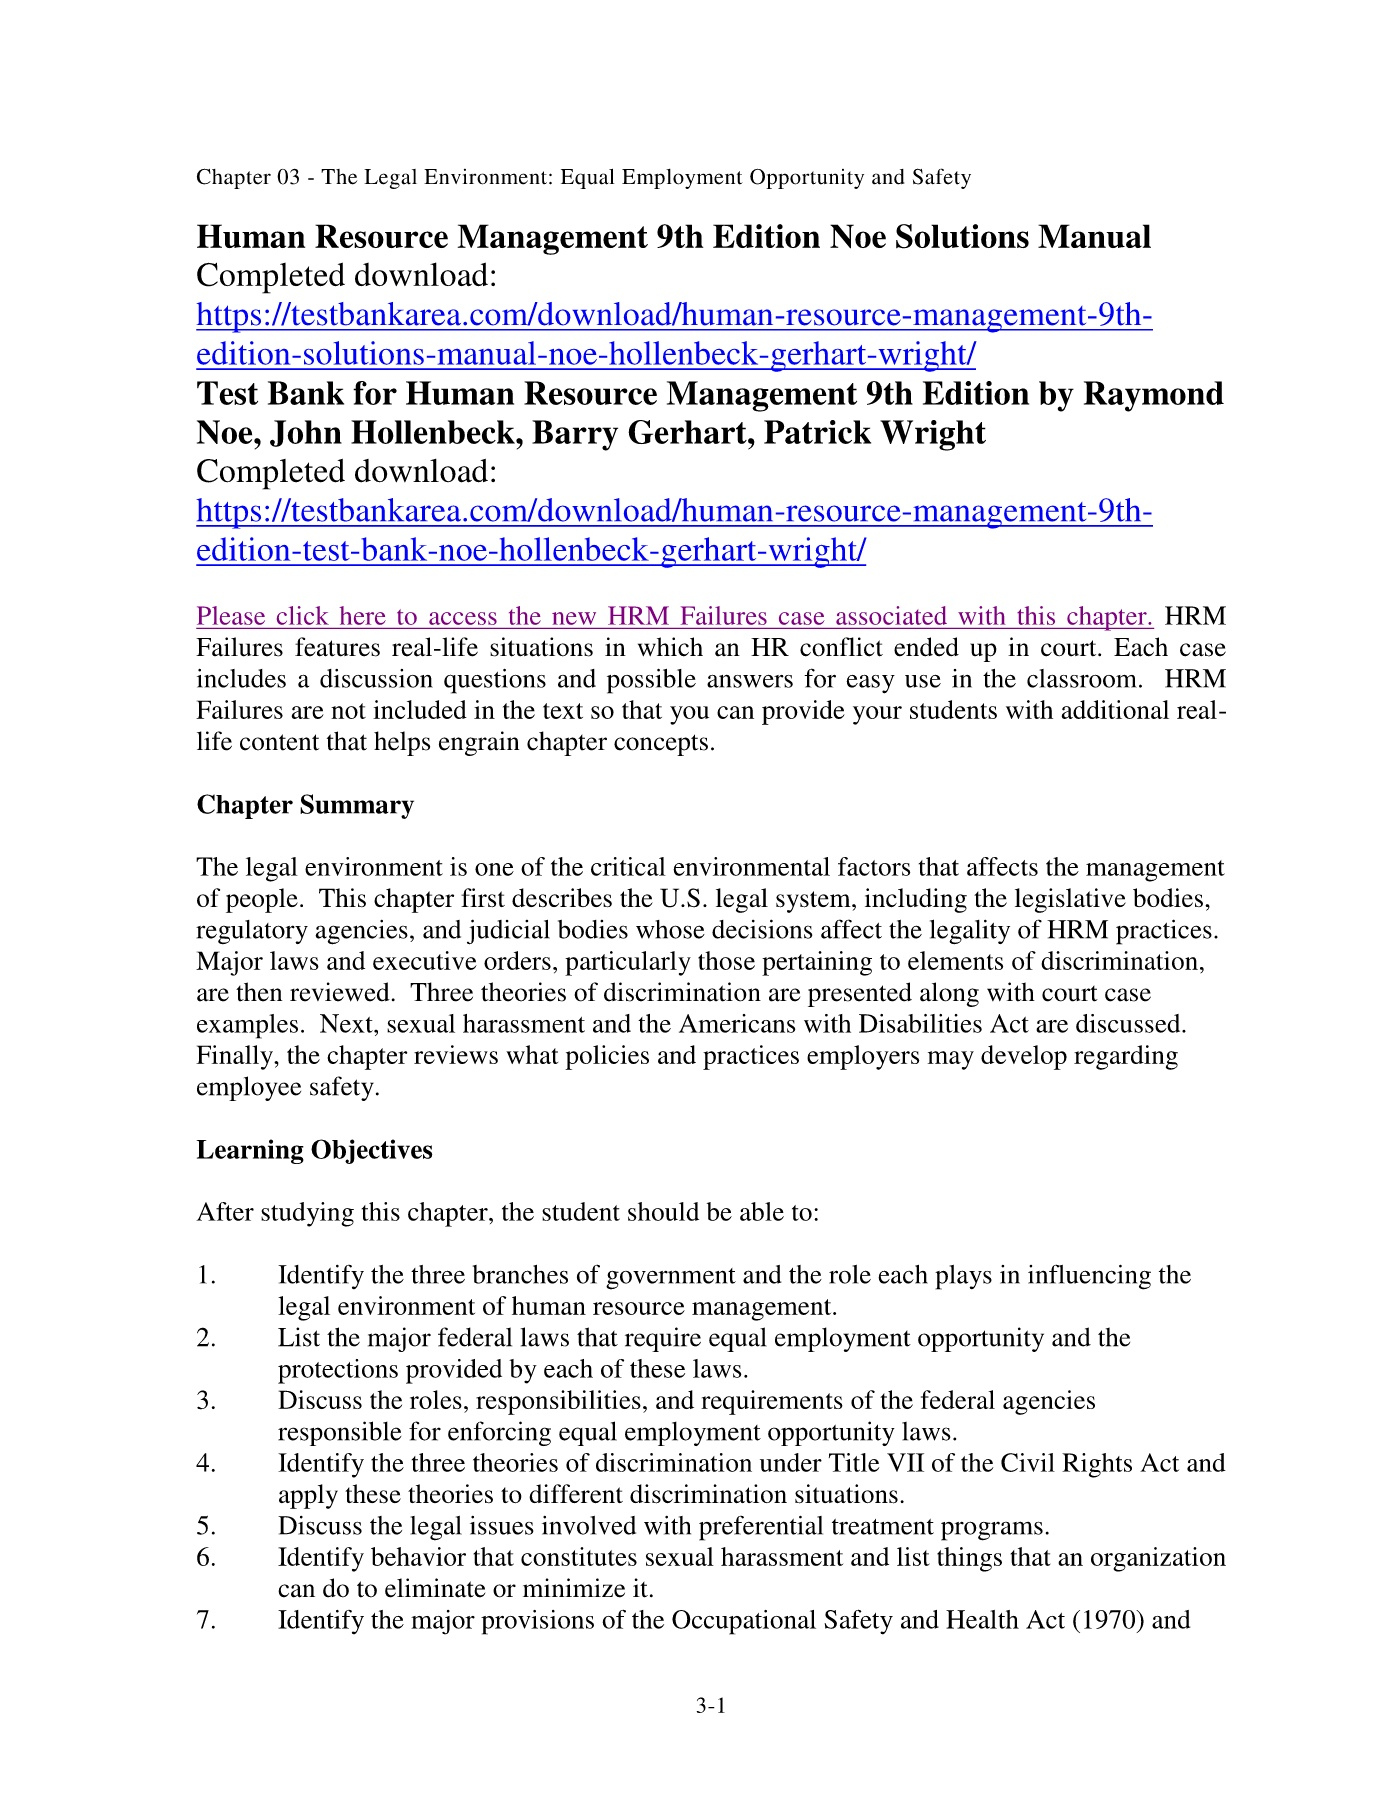 Human-Resource-Management-9th-Edition-Noe-Solutions-Manual